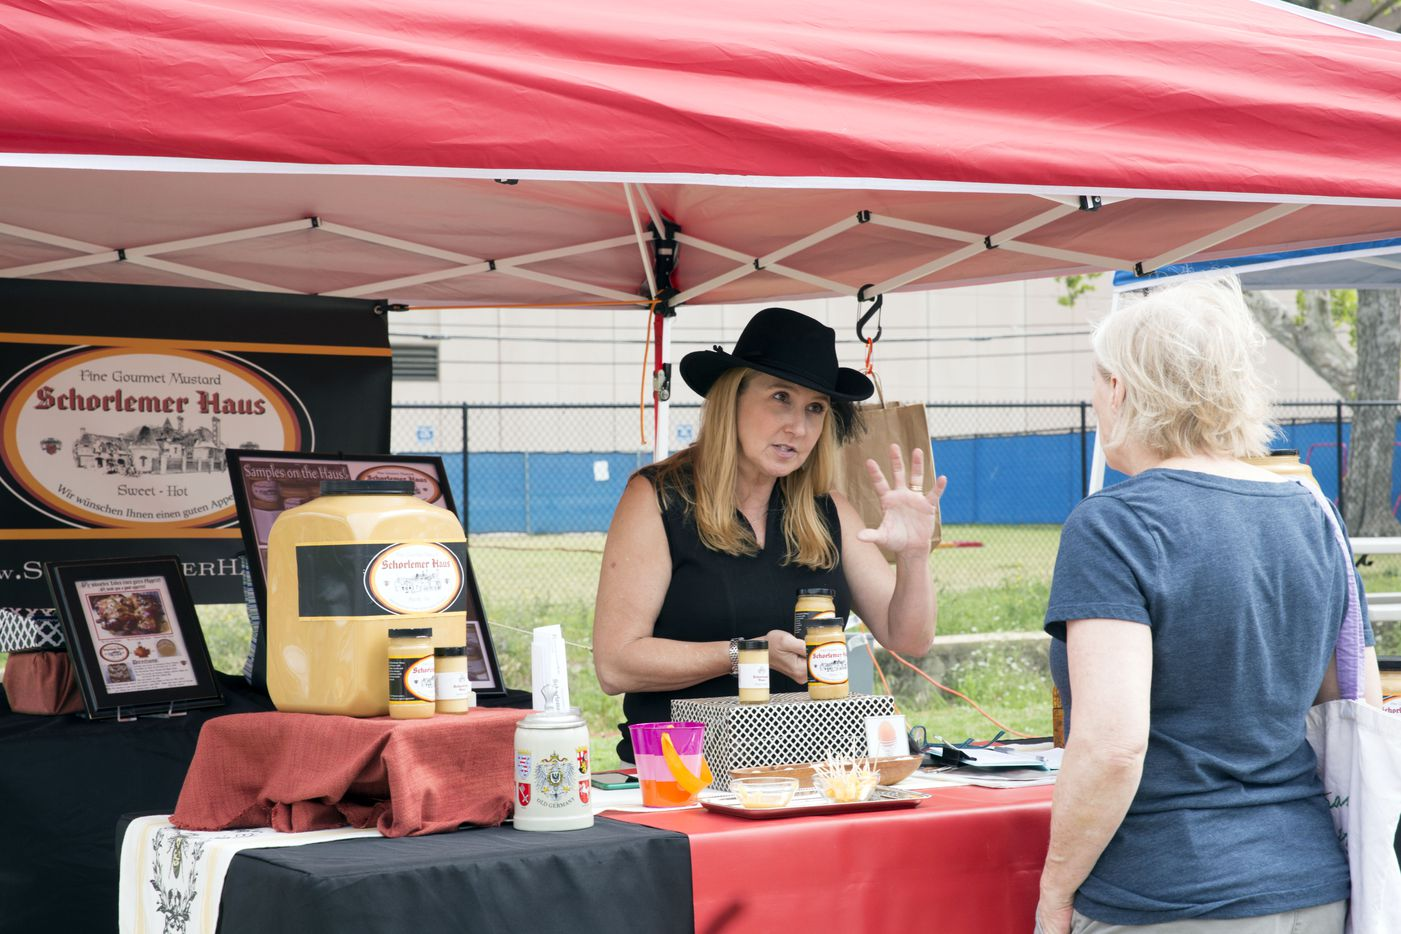 Vendor Lee Anne Schorlemar Sugg of Schorlemer Haus, a gourmet mustard company, speaks with a customer during the opening day of Saint Michael's Farmers Market.